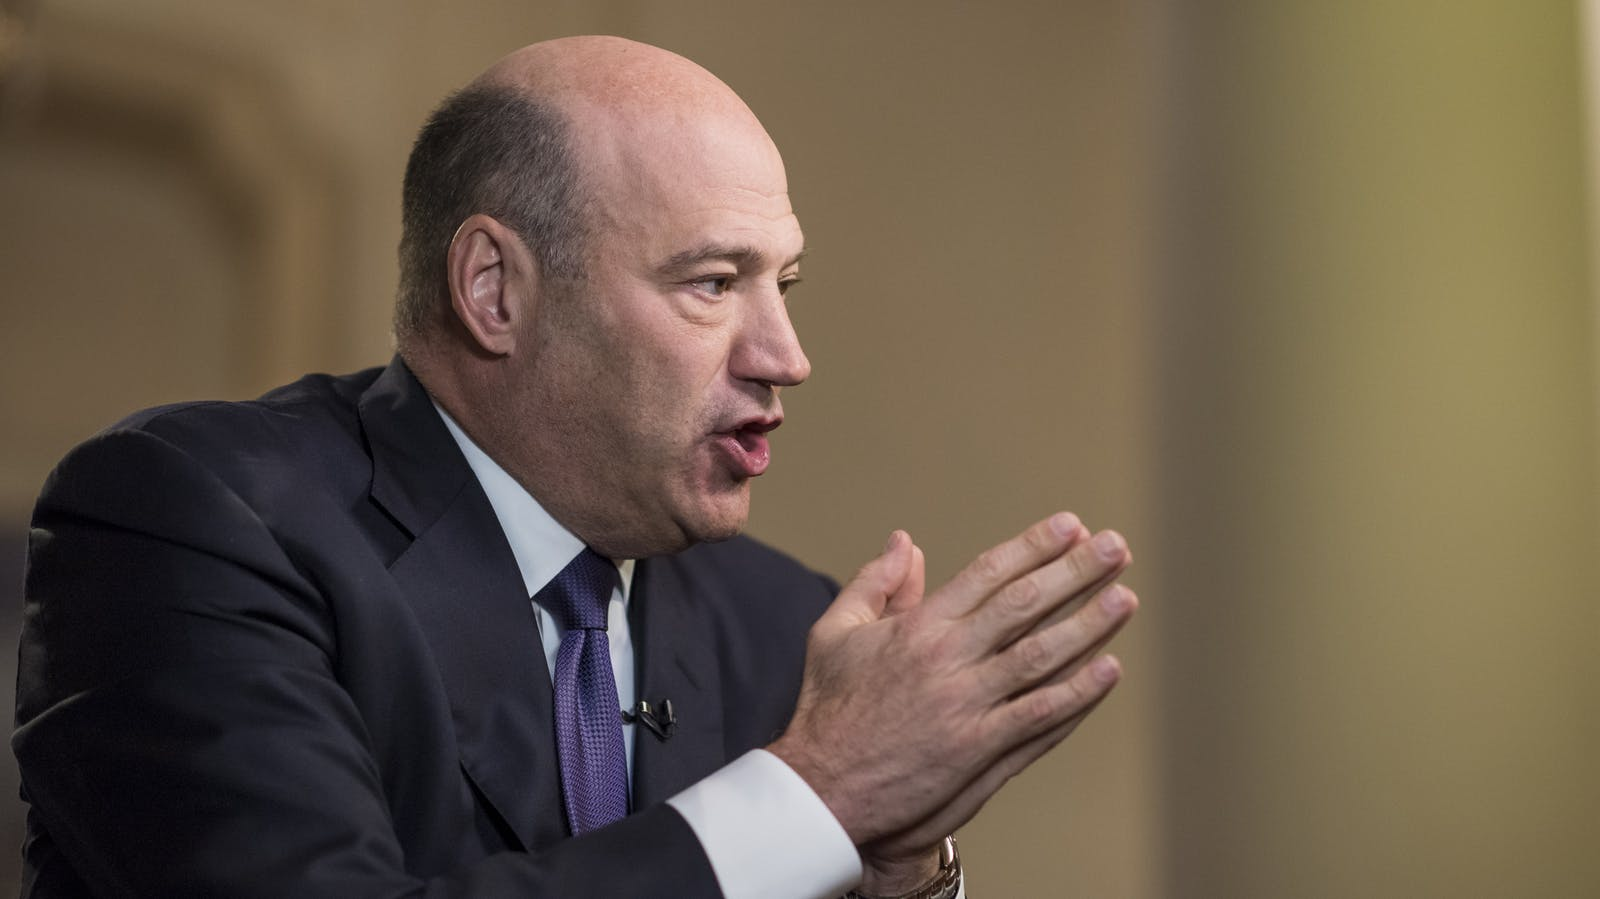 Goldman Sachs President and COO Gary Cohn in San Francisco this week. Photo by Bloomberg.